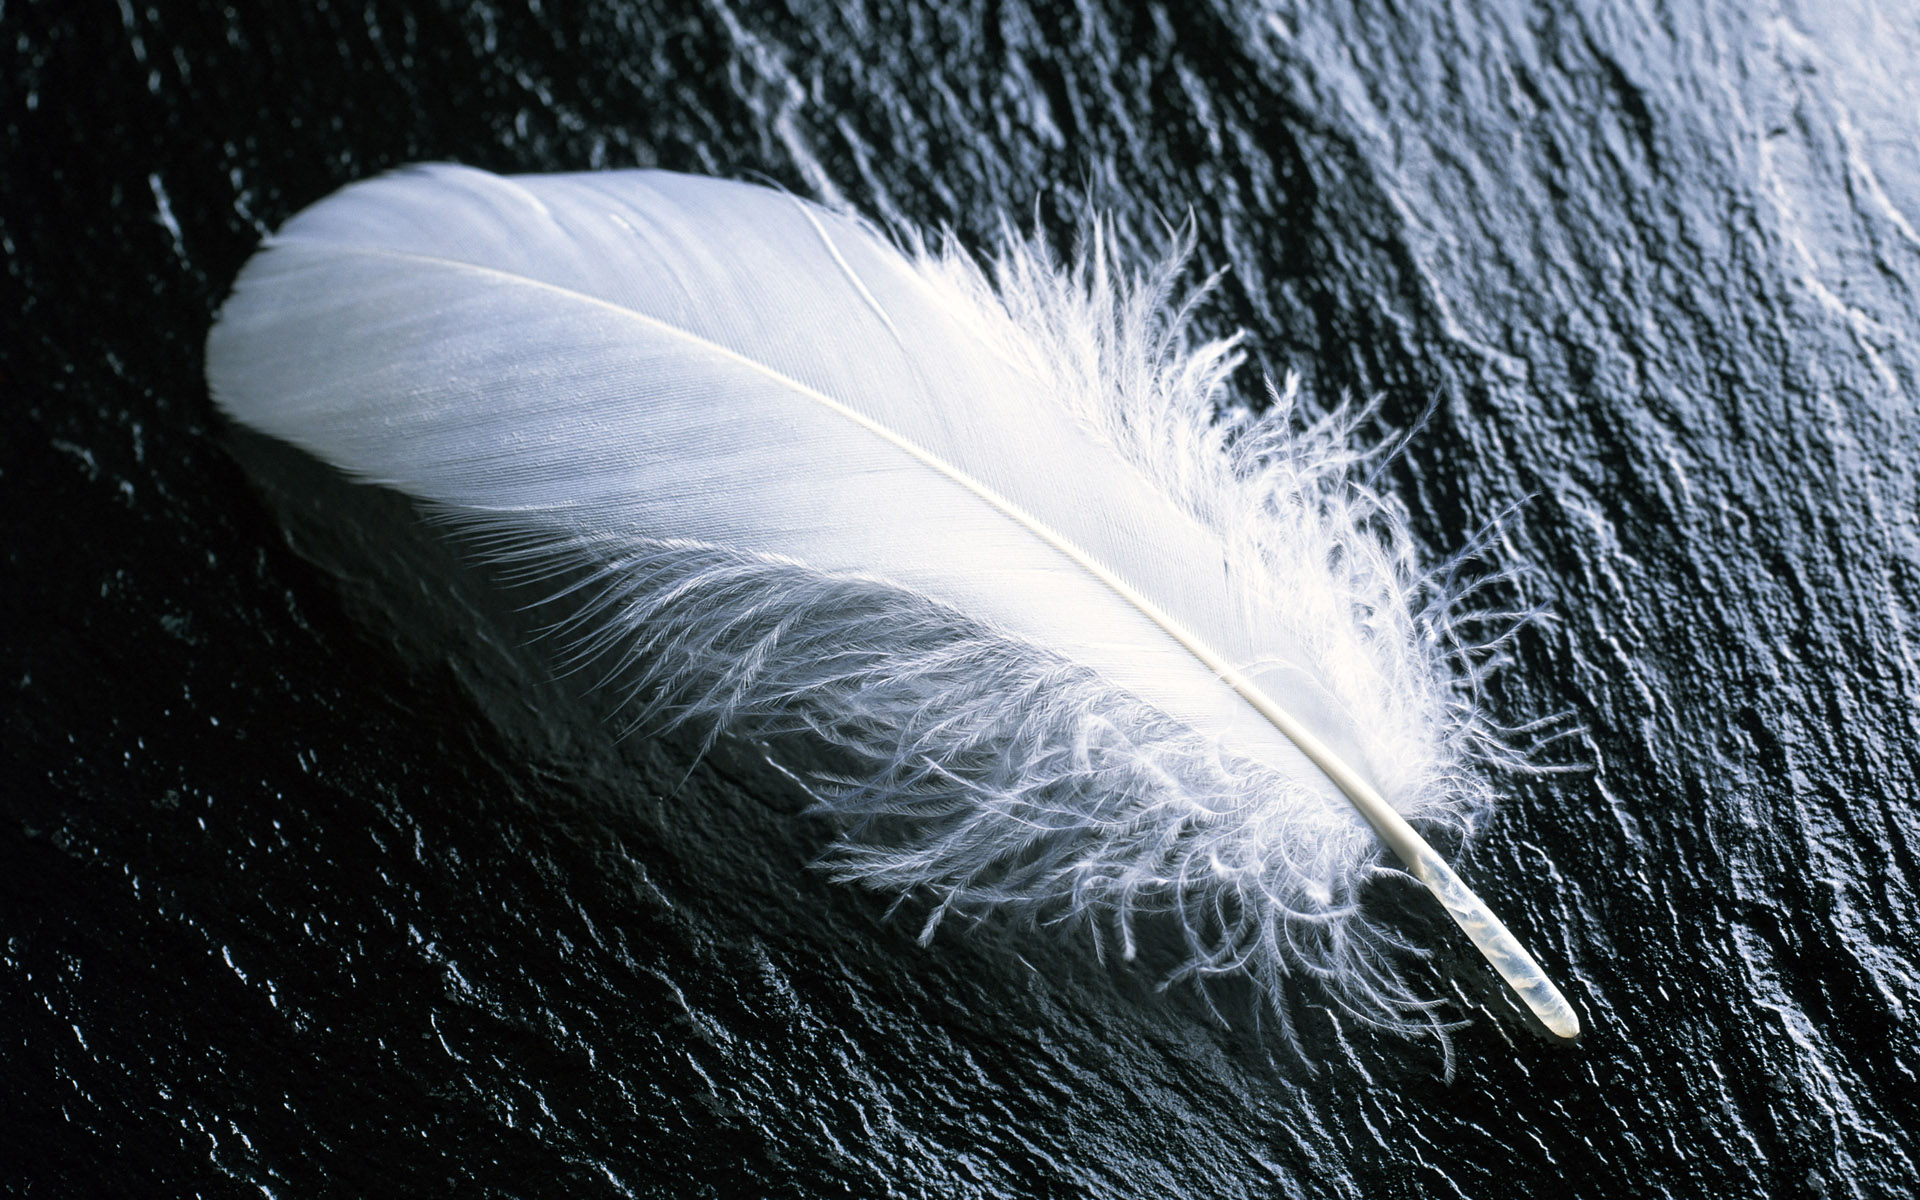 Nice Feathers Photos and Pictures, Feathers HQFX Wallpapers